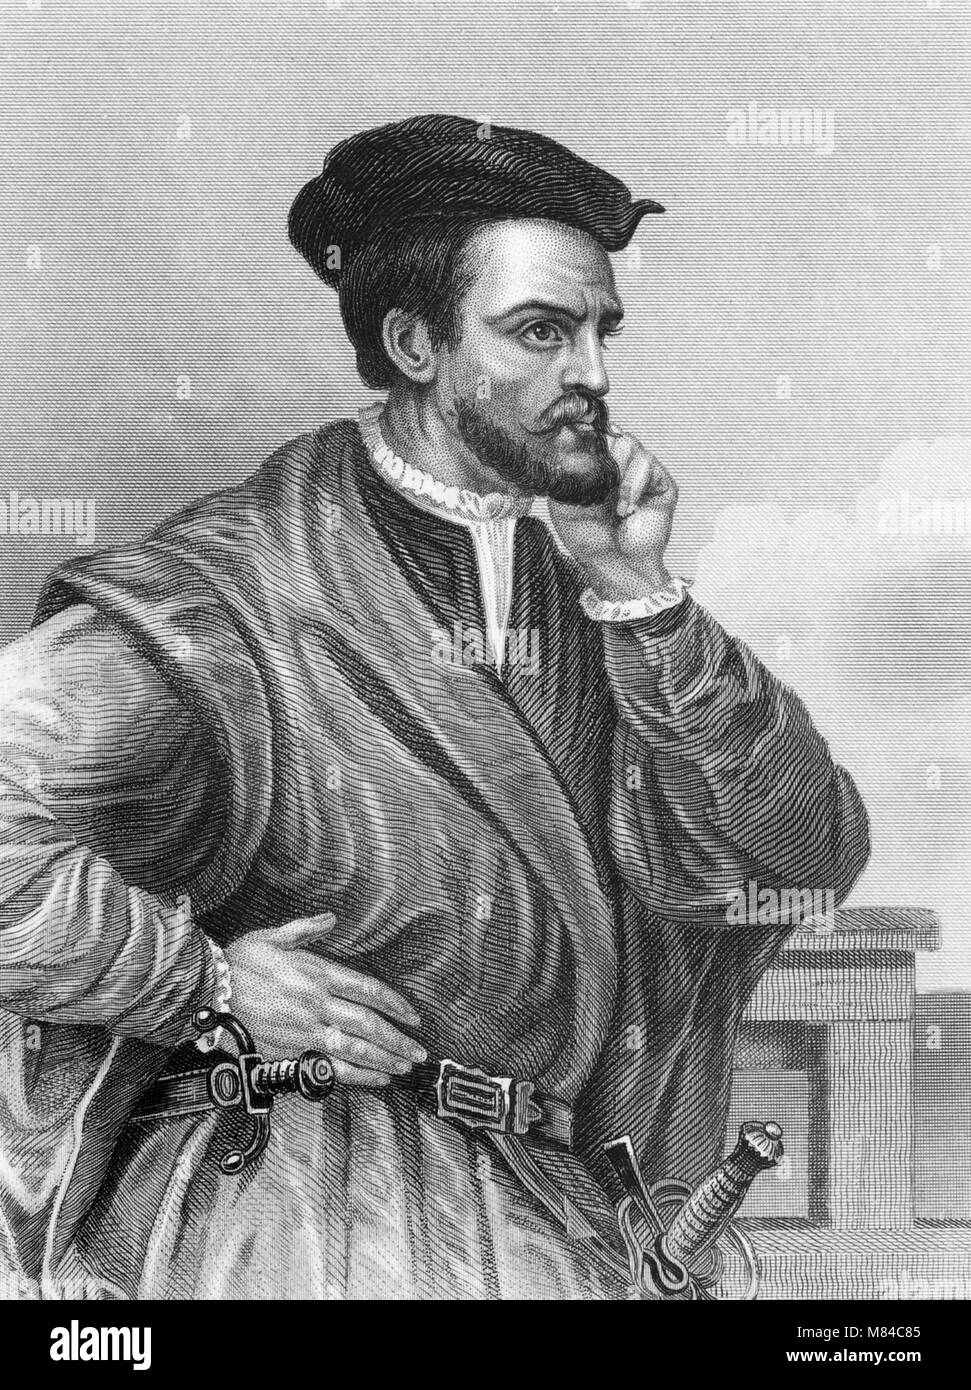 Jacques Cartier  1491 1557   A 19th century engraving of the Breton     Jacques Cartier  1491 1557   A 19th century engraving of the Breton  explorer who claimed what is now Canada for France